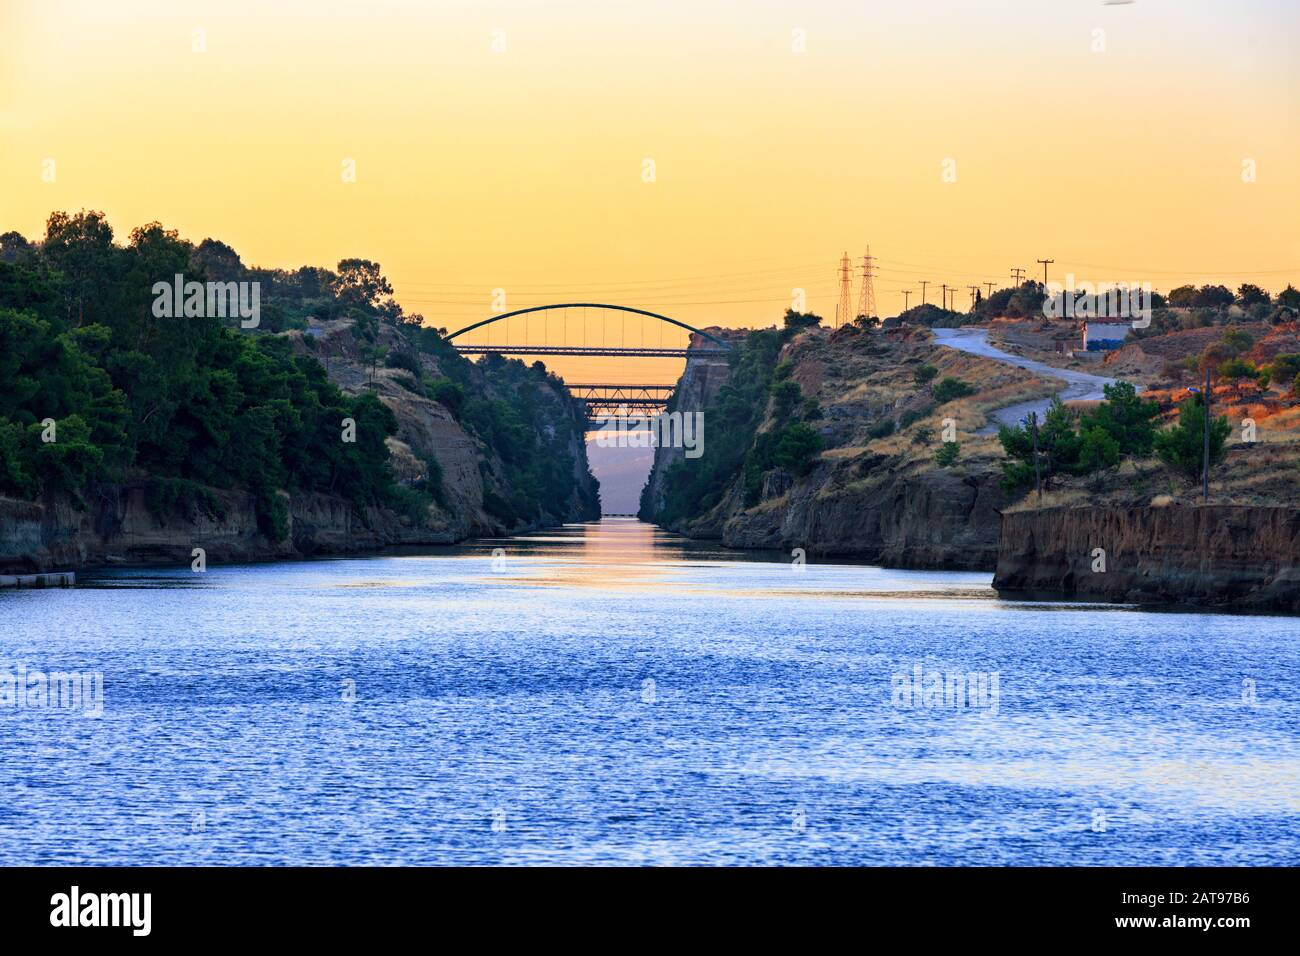 View of the transport bridges over the Corinth Canal in Greece against the morning light of the beginning day. Stock Photo